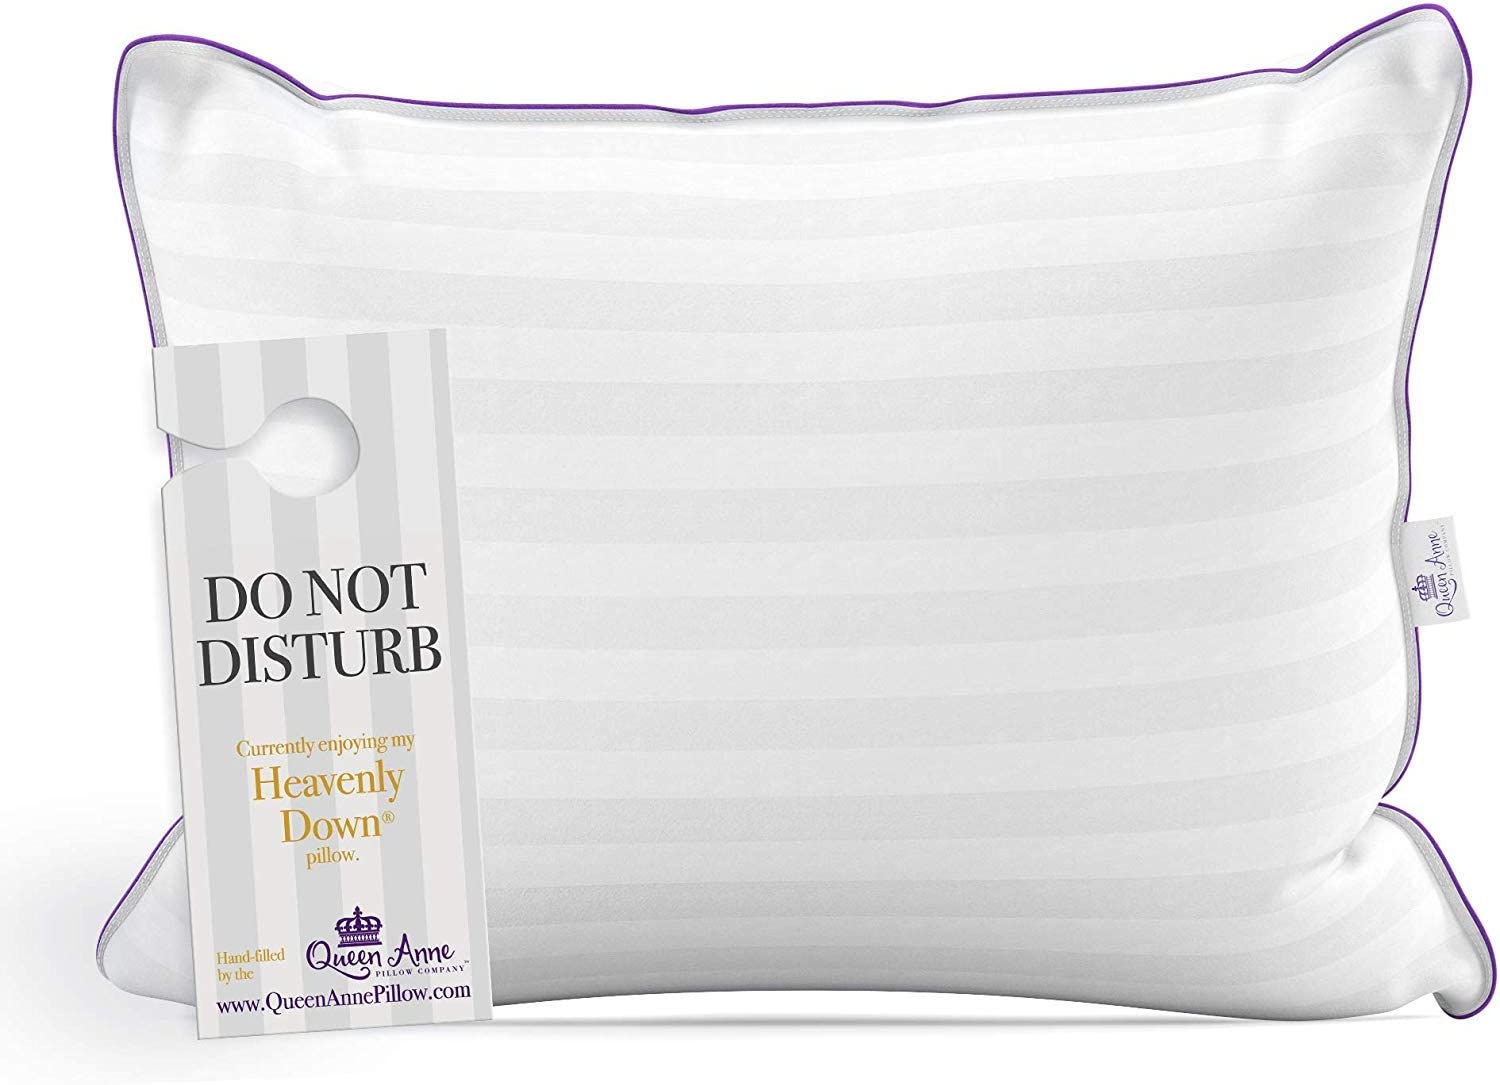 """Standard Size Pillow for Sleeping, Allergy Free Bed Pillows - Luxury Hotel Quality Pillow, Synthetic Down Alternative Hypoallergenic Pillows for Back, Stomach, Side Sleepers (Standard Soft 20"""" x 26"""")"""